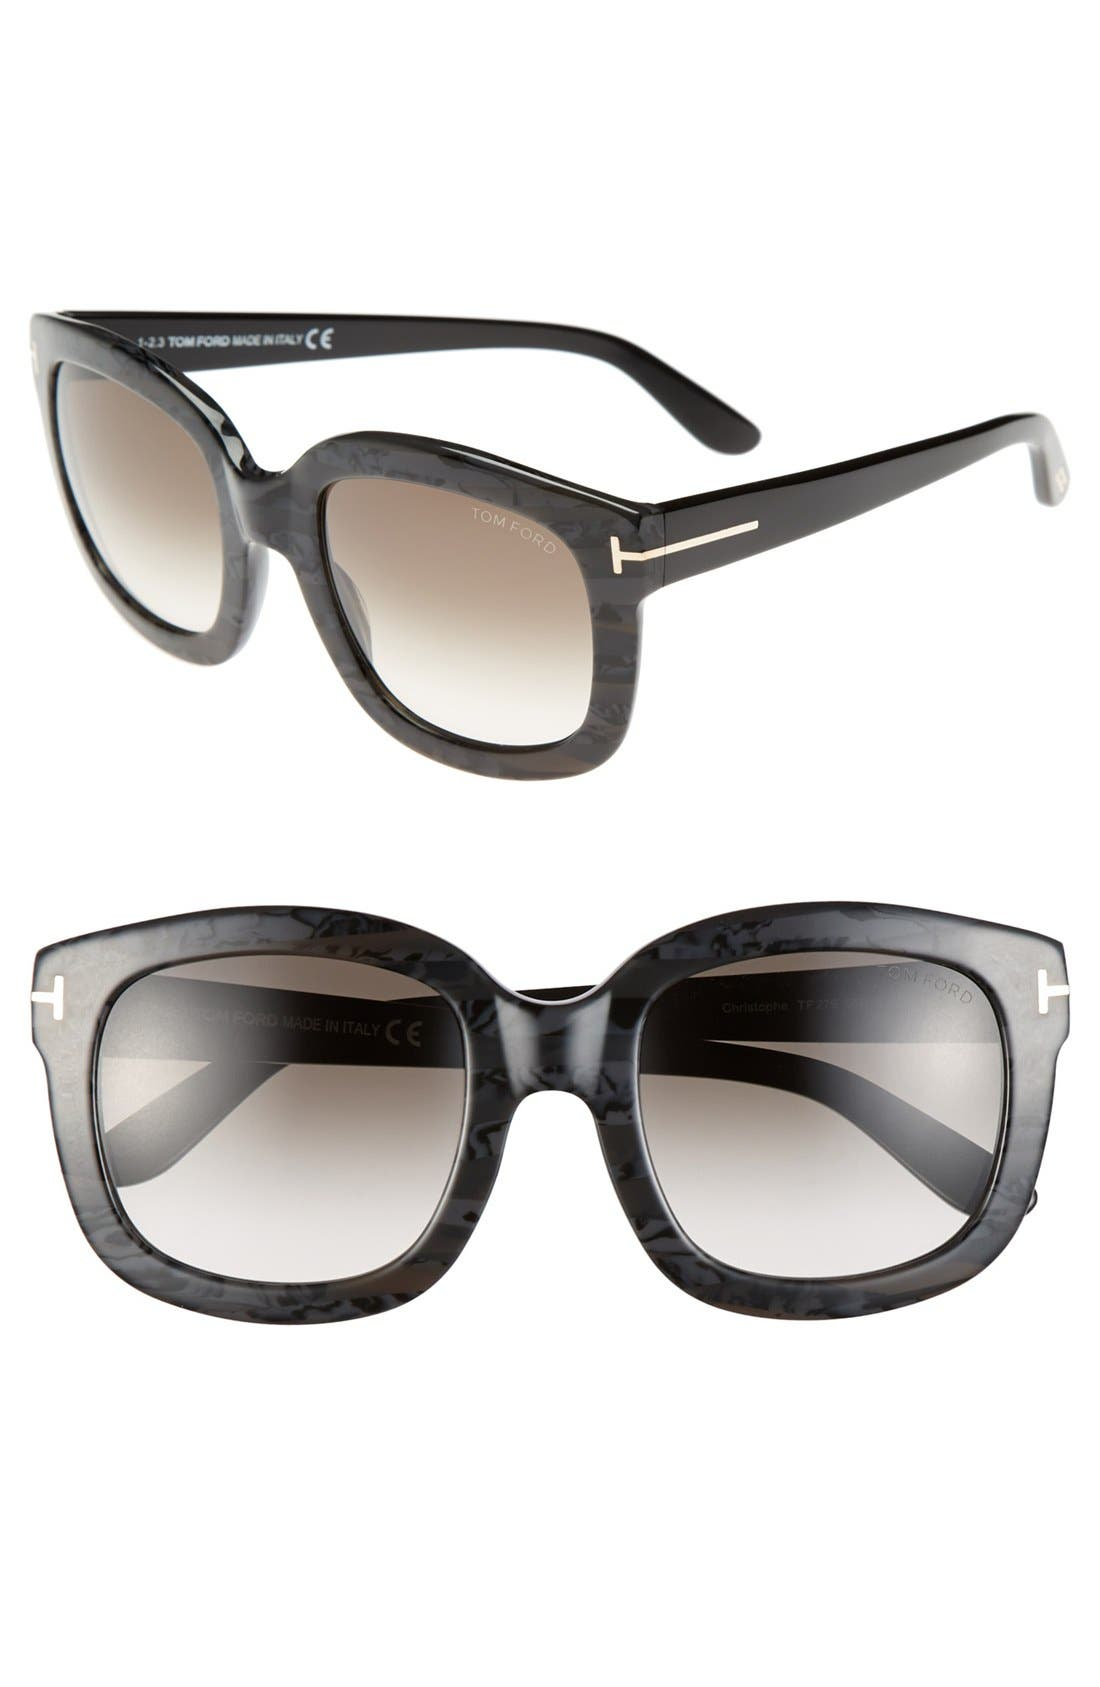 Alternate Image 1 Selected - Tom Ford 'Christophe' 53mm Sunglasses